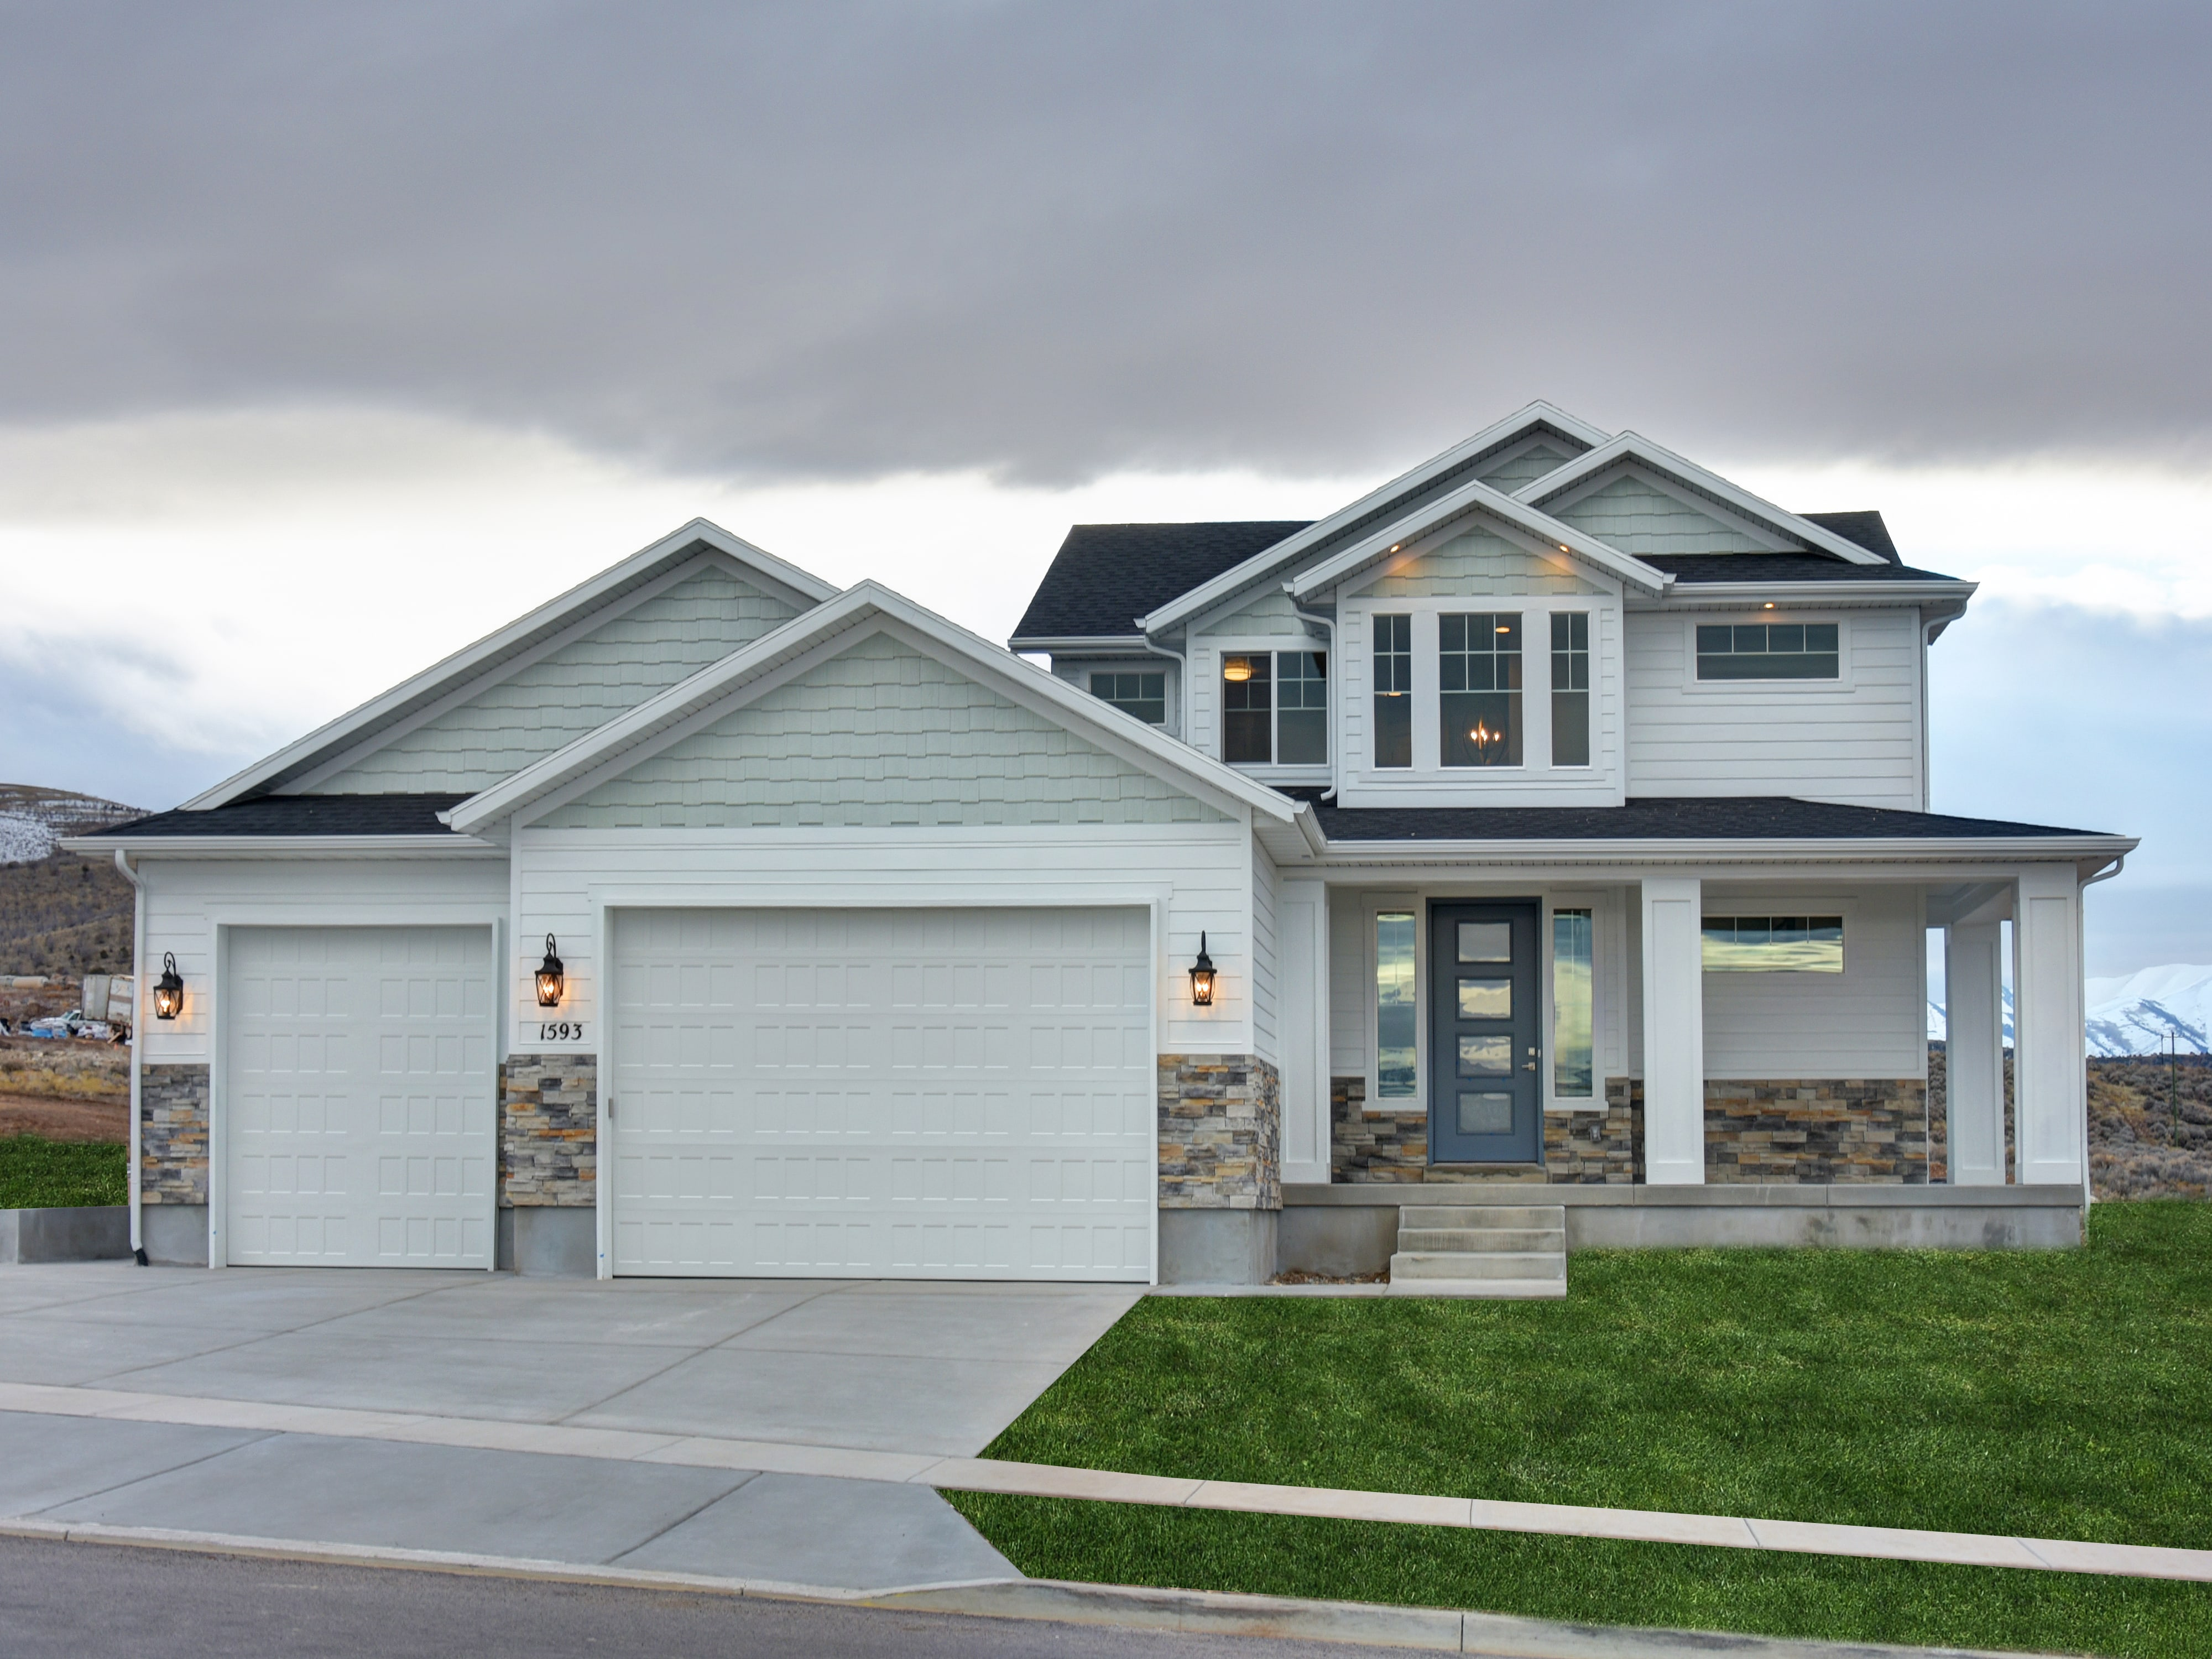 Utah homes for sale by lightyear homes lightyear homes for Modern homes utah for sale